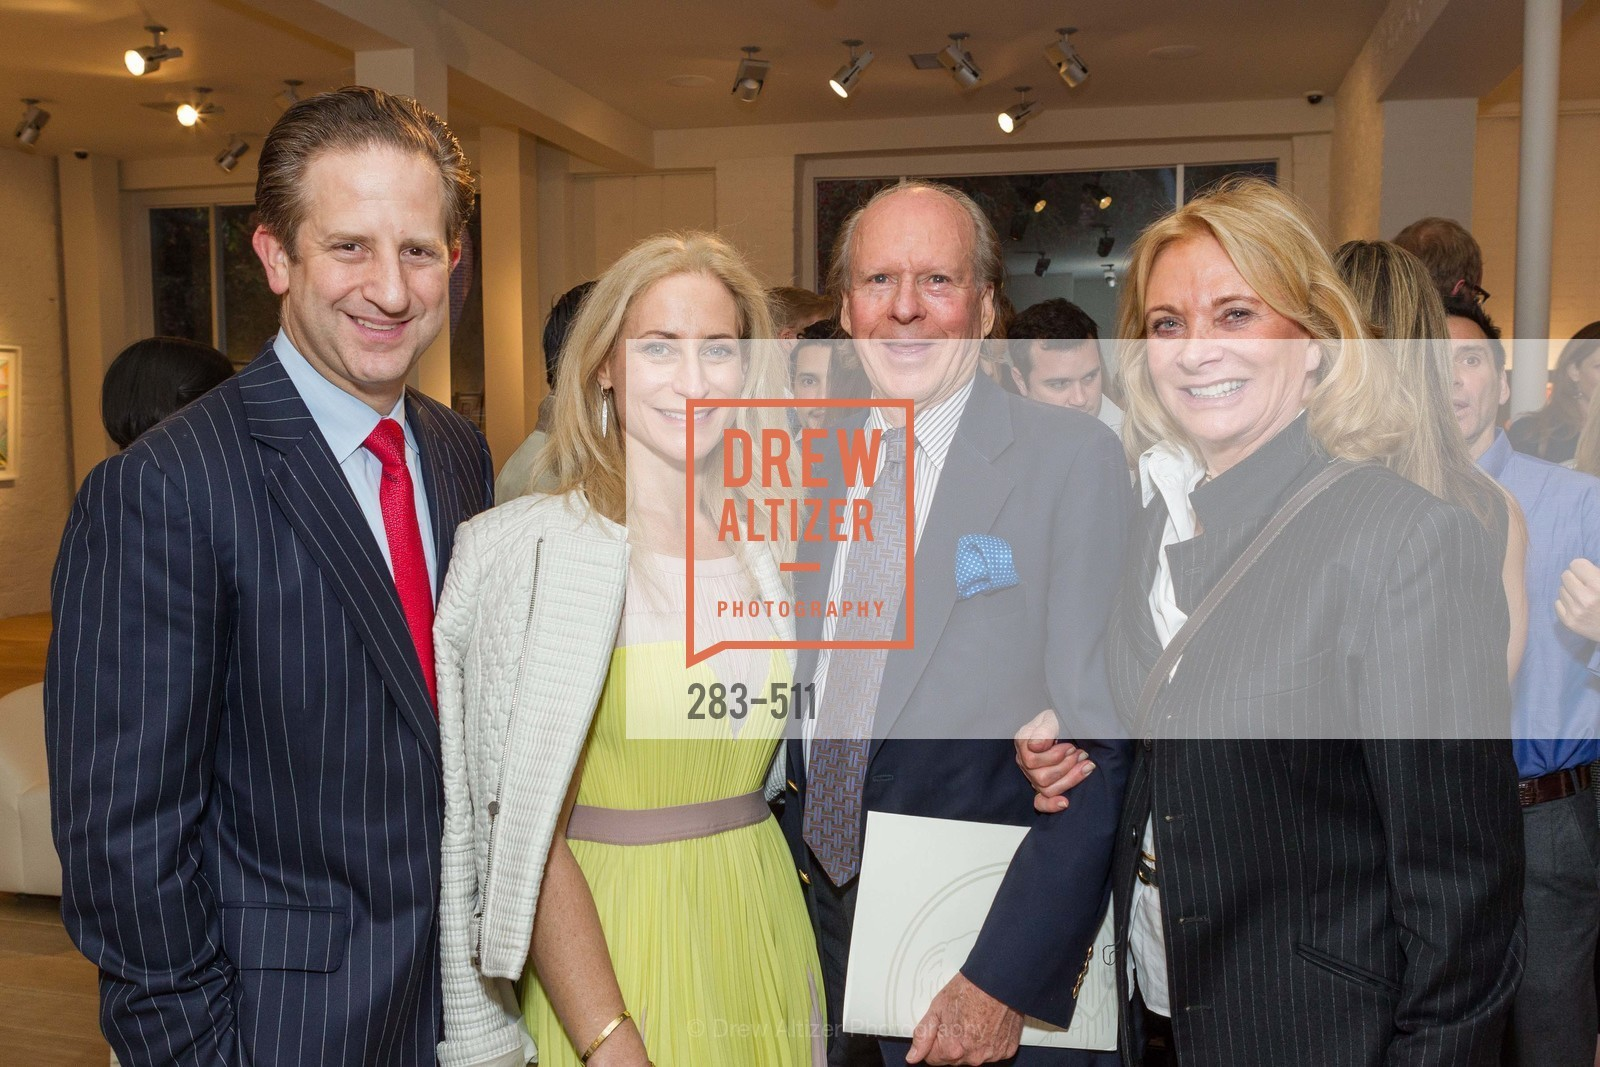 Robert Shwarts, Joni Binder, Austin Hills, Sara Hills, CHRISTIE'S Preview to Benefit CalArts School of Art, US. Hedge Gallery 501 Pacific Avenue, April 9th, 2014,Drew Altizer, Drew Altizer Photography, full-service event agency, private events, San Francisco photographer, photographer California